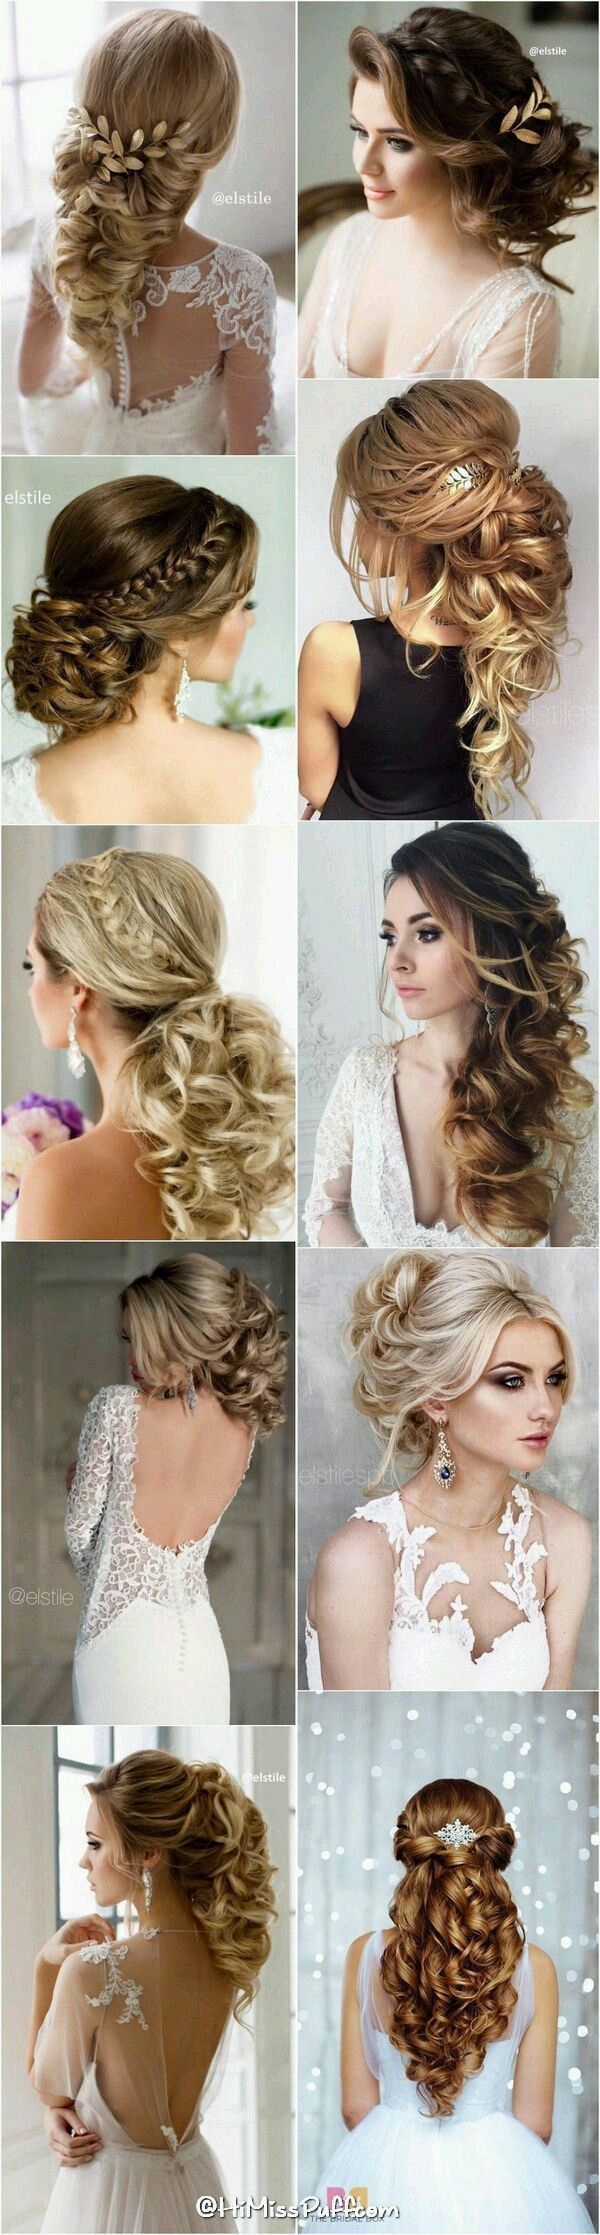 Wedding Hairstyle For Long Hair Picture Description Arabic Hair Styles For Wedding Hair Styles Long Hair Styles Hair Beauty